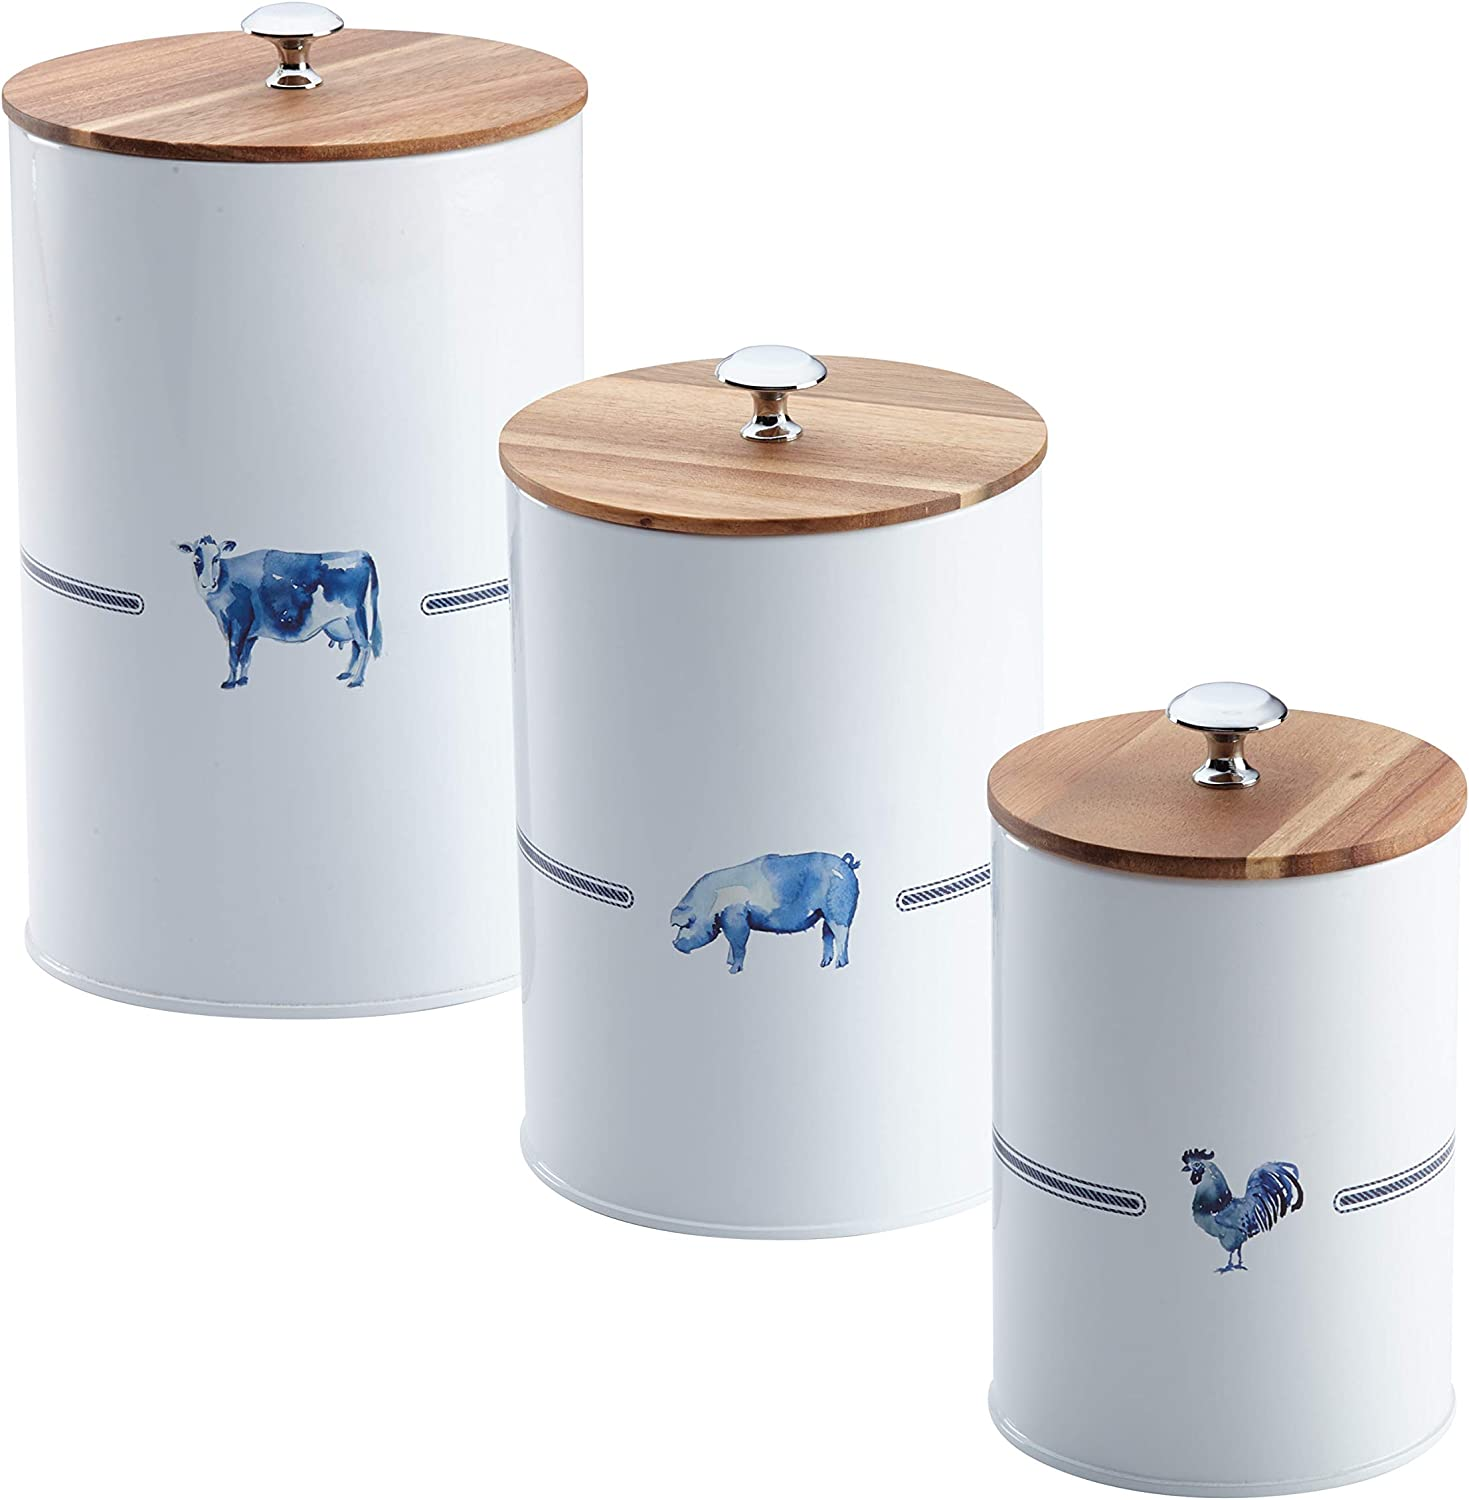 Paula Deen Pantryware Food Storage Container Set / Food Storage Jar Set - 3 Piece, Country Barnyard